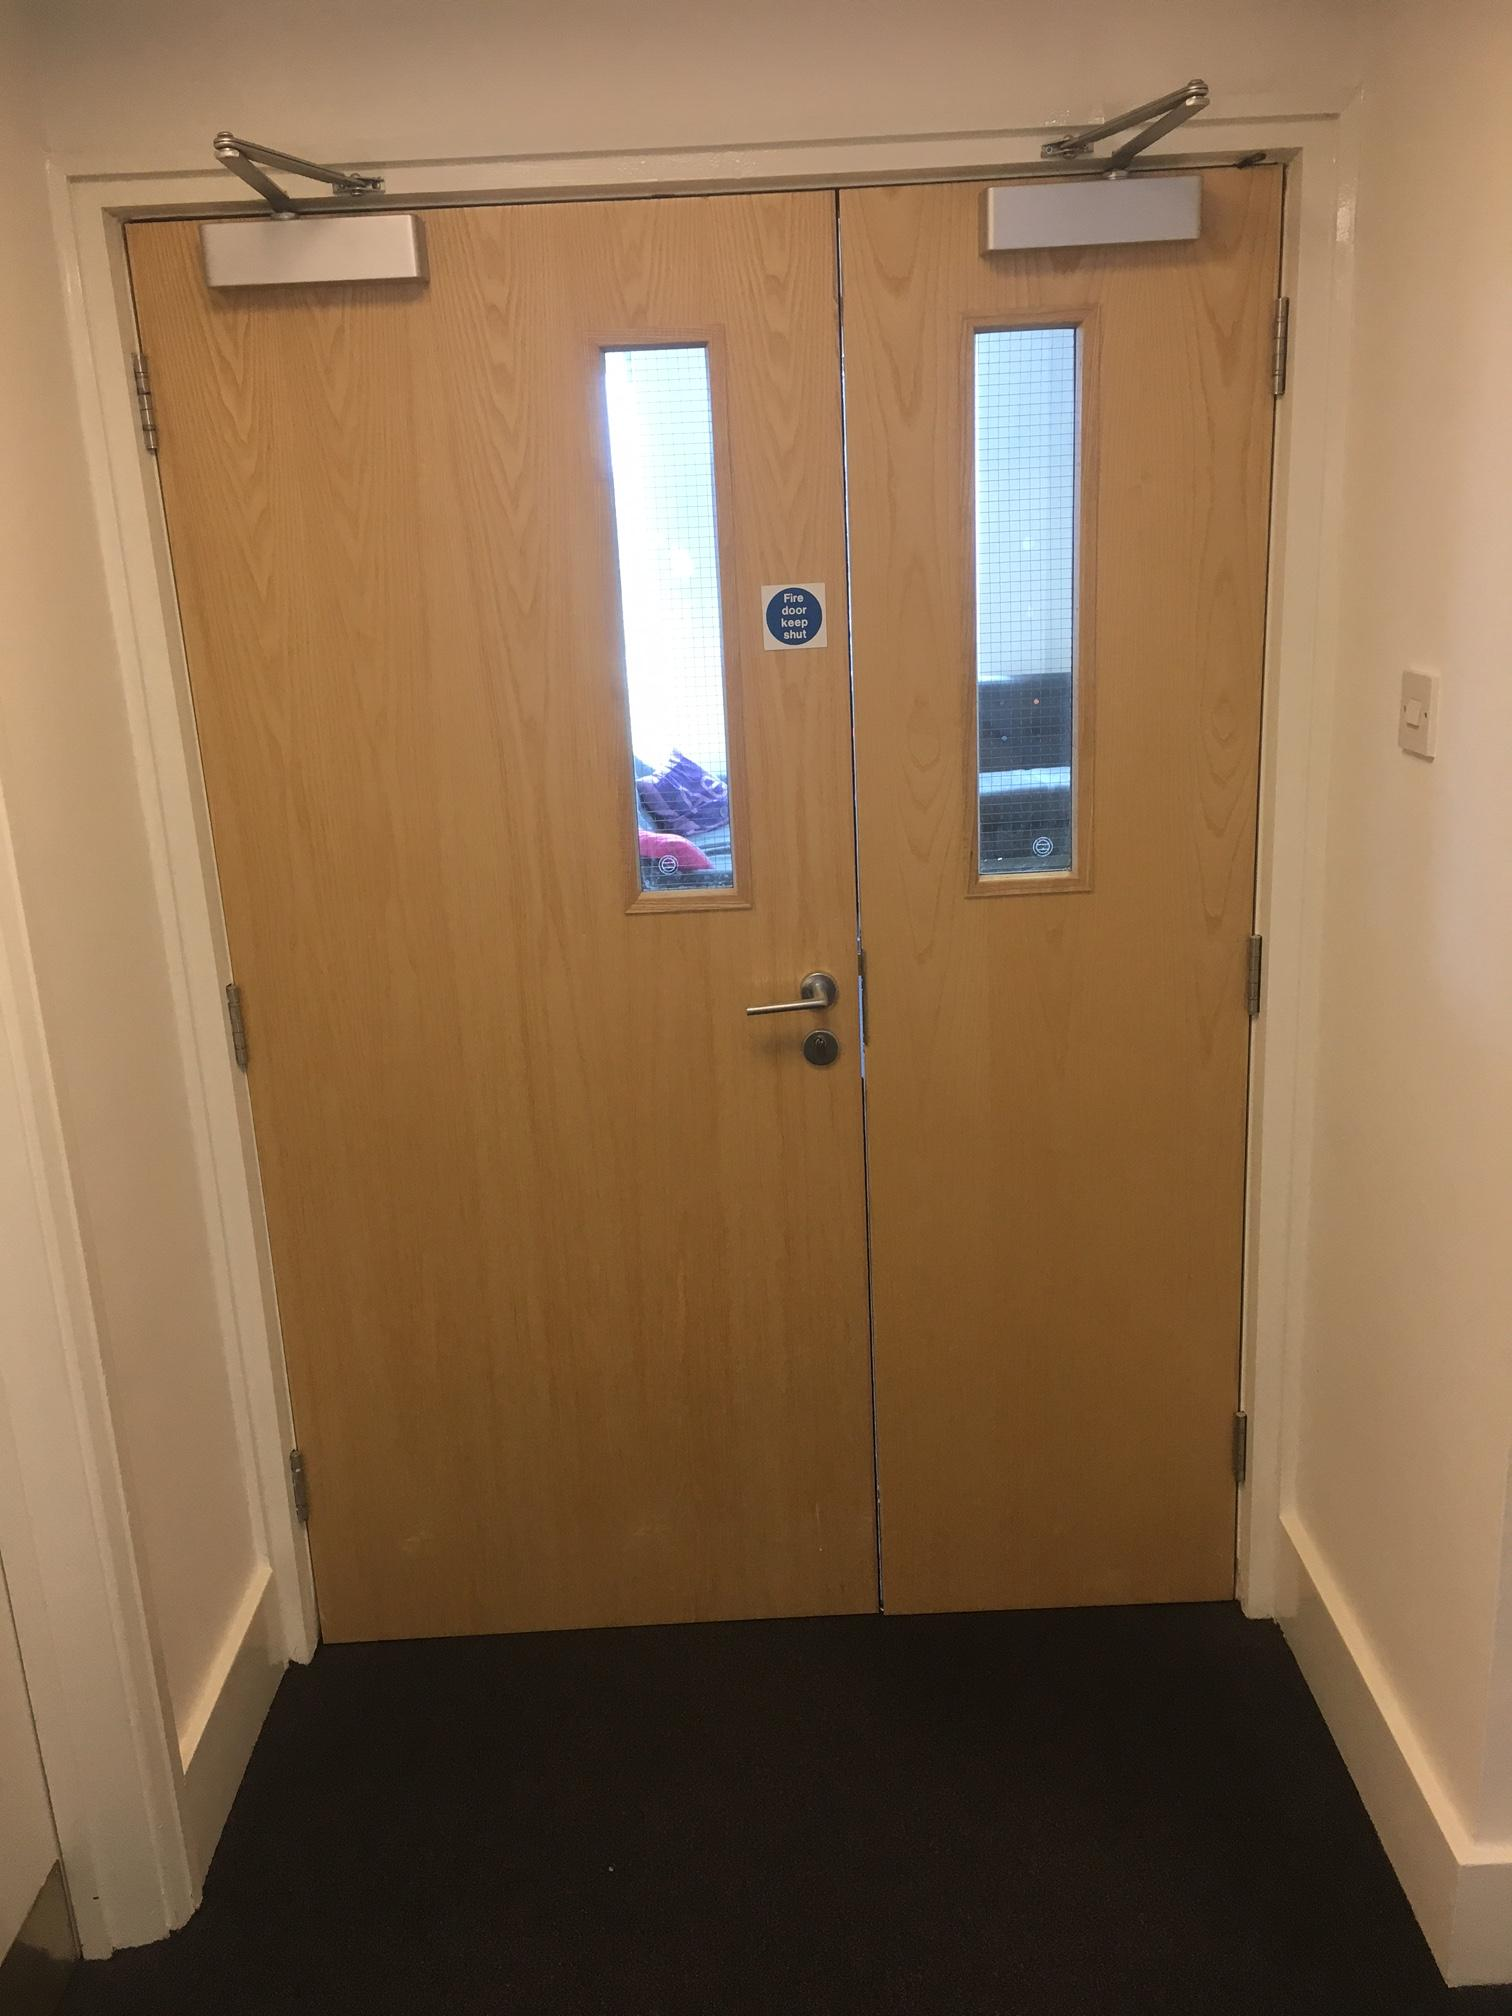 Double Door With Gap In The Middle Fire Doors And